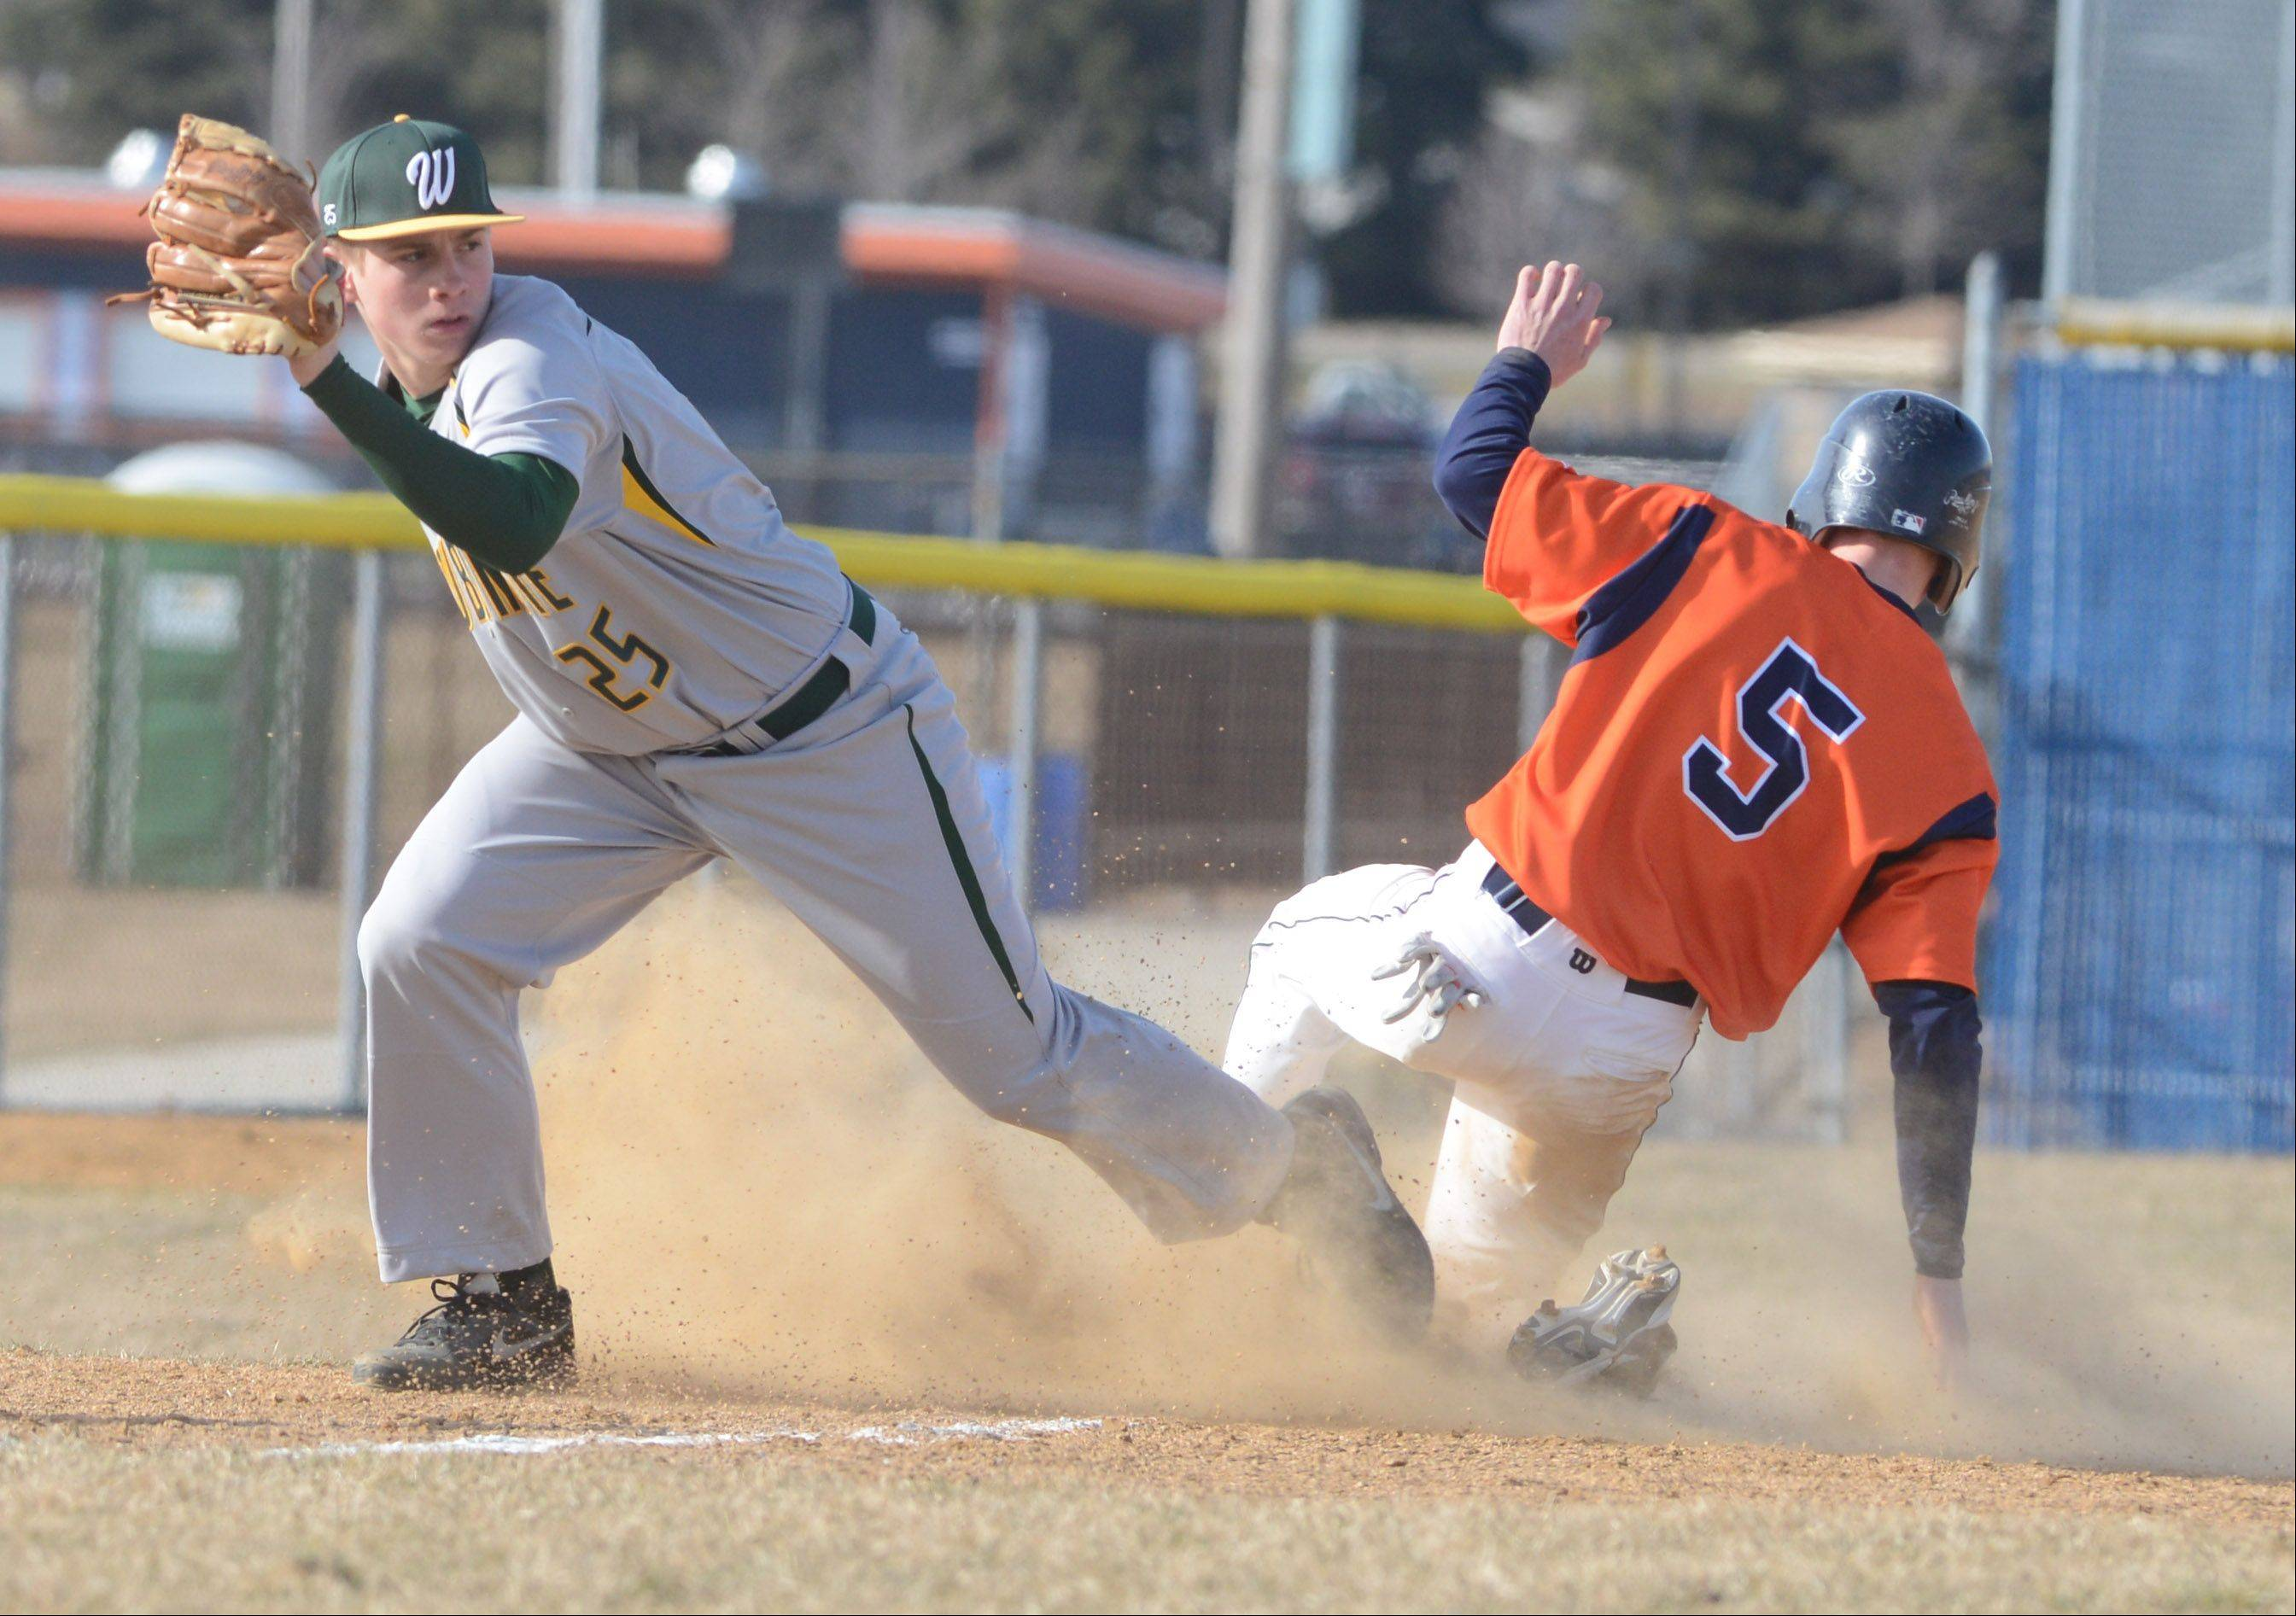 Ben Vietri of Waubonsie forces out Josh Harrington of Naperville North at third. This took place during the Waubonsie Valley at Naperville North baseball game Wednesday.